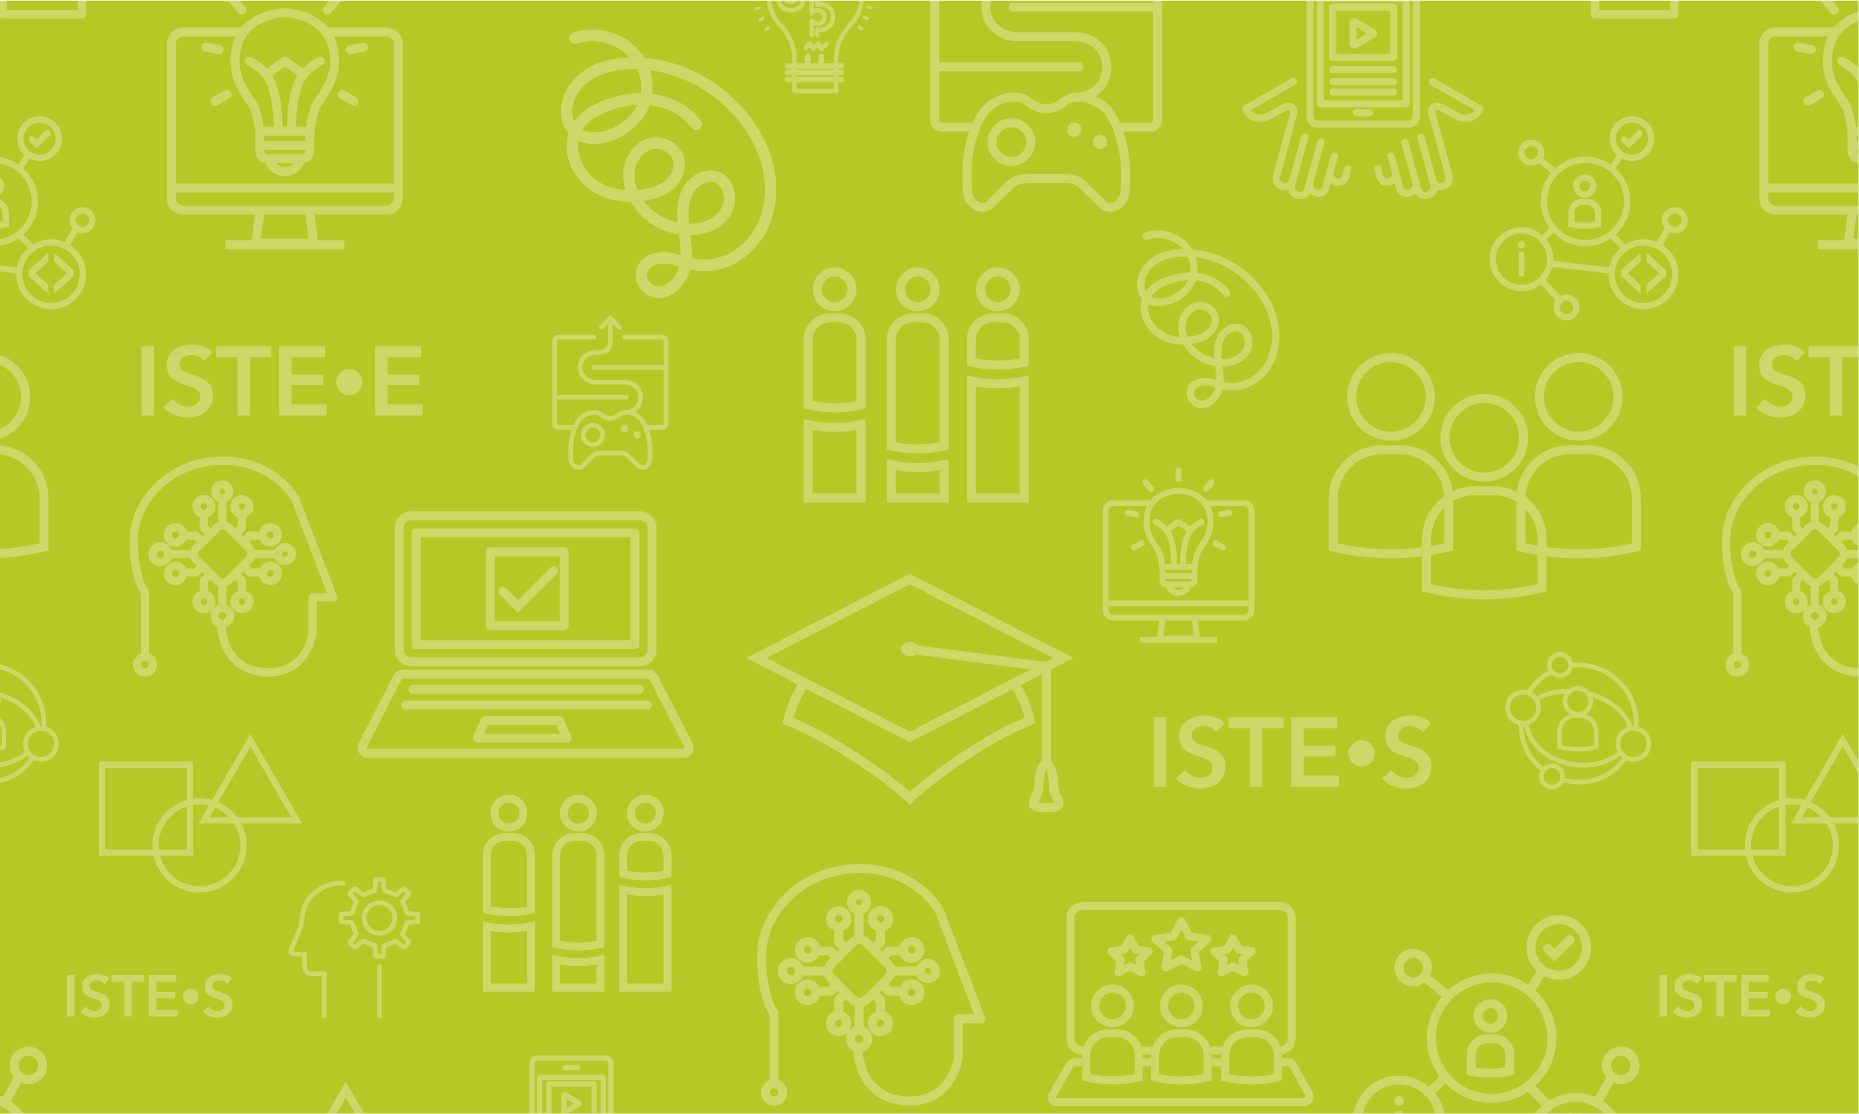 New ISTE U microcourses: Enhance your online learning in less than 2 hours!